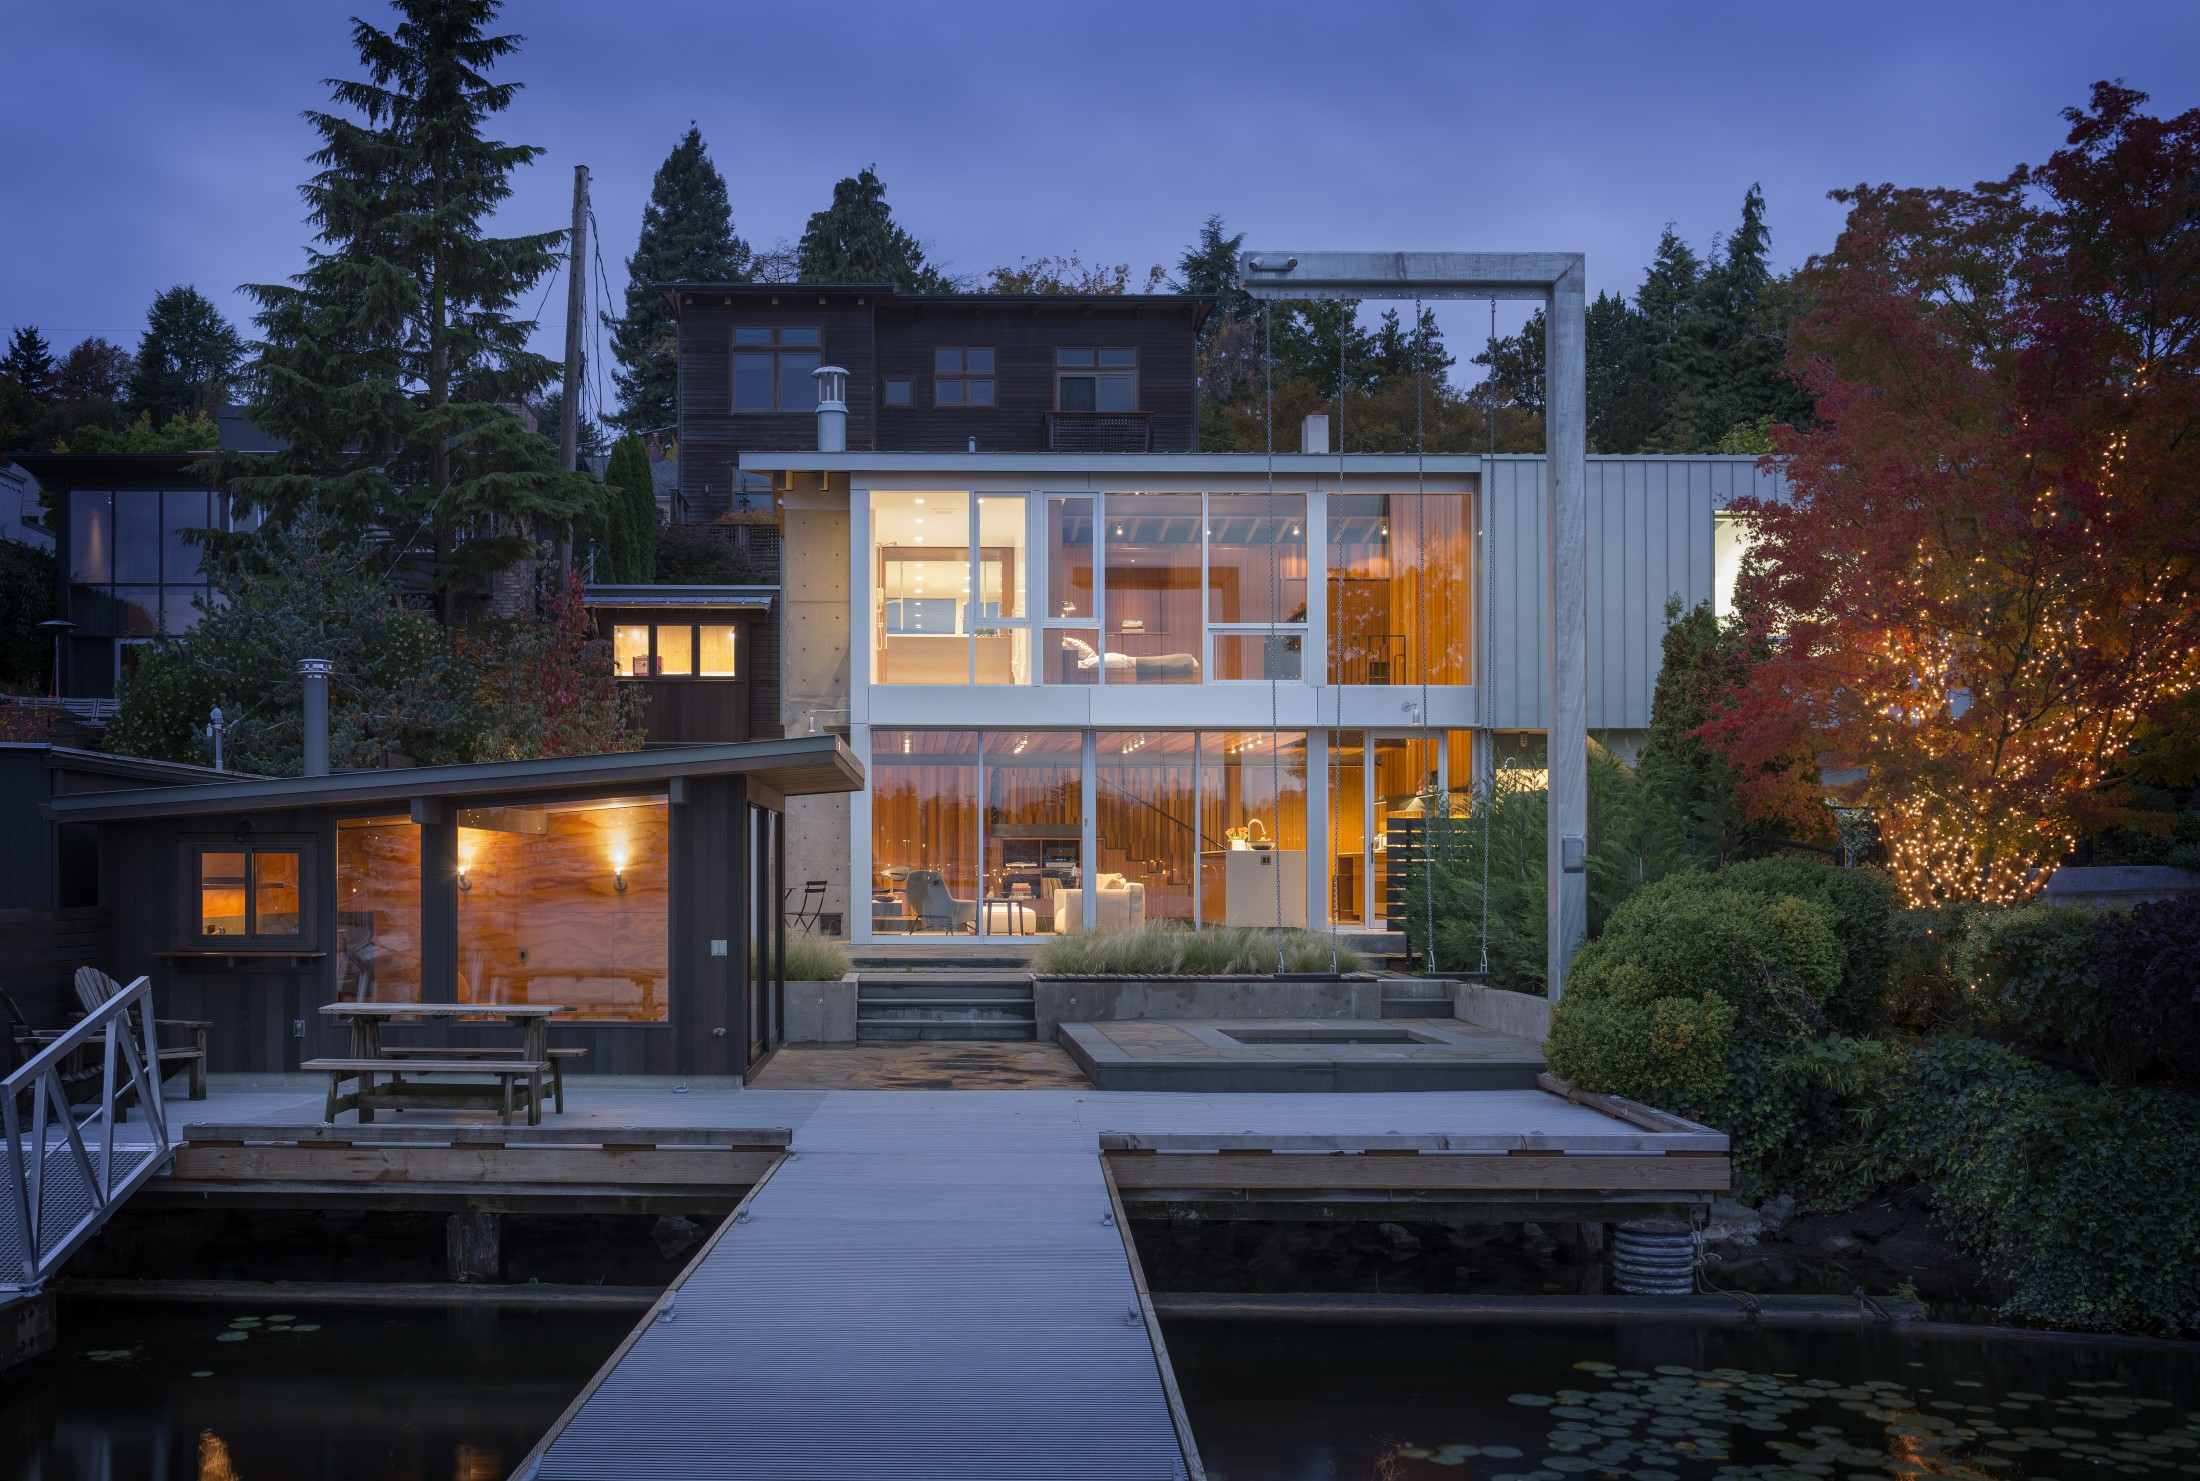 This home belongs to a bachelor that appreciates privacy, comfort and wanted to get the most of bay views